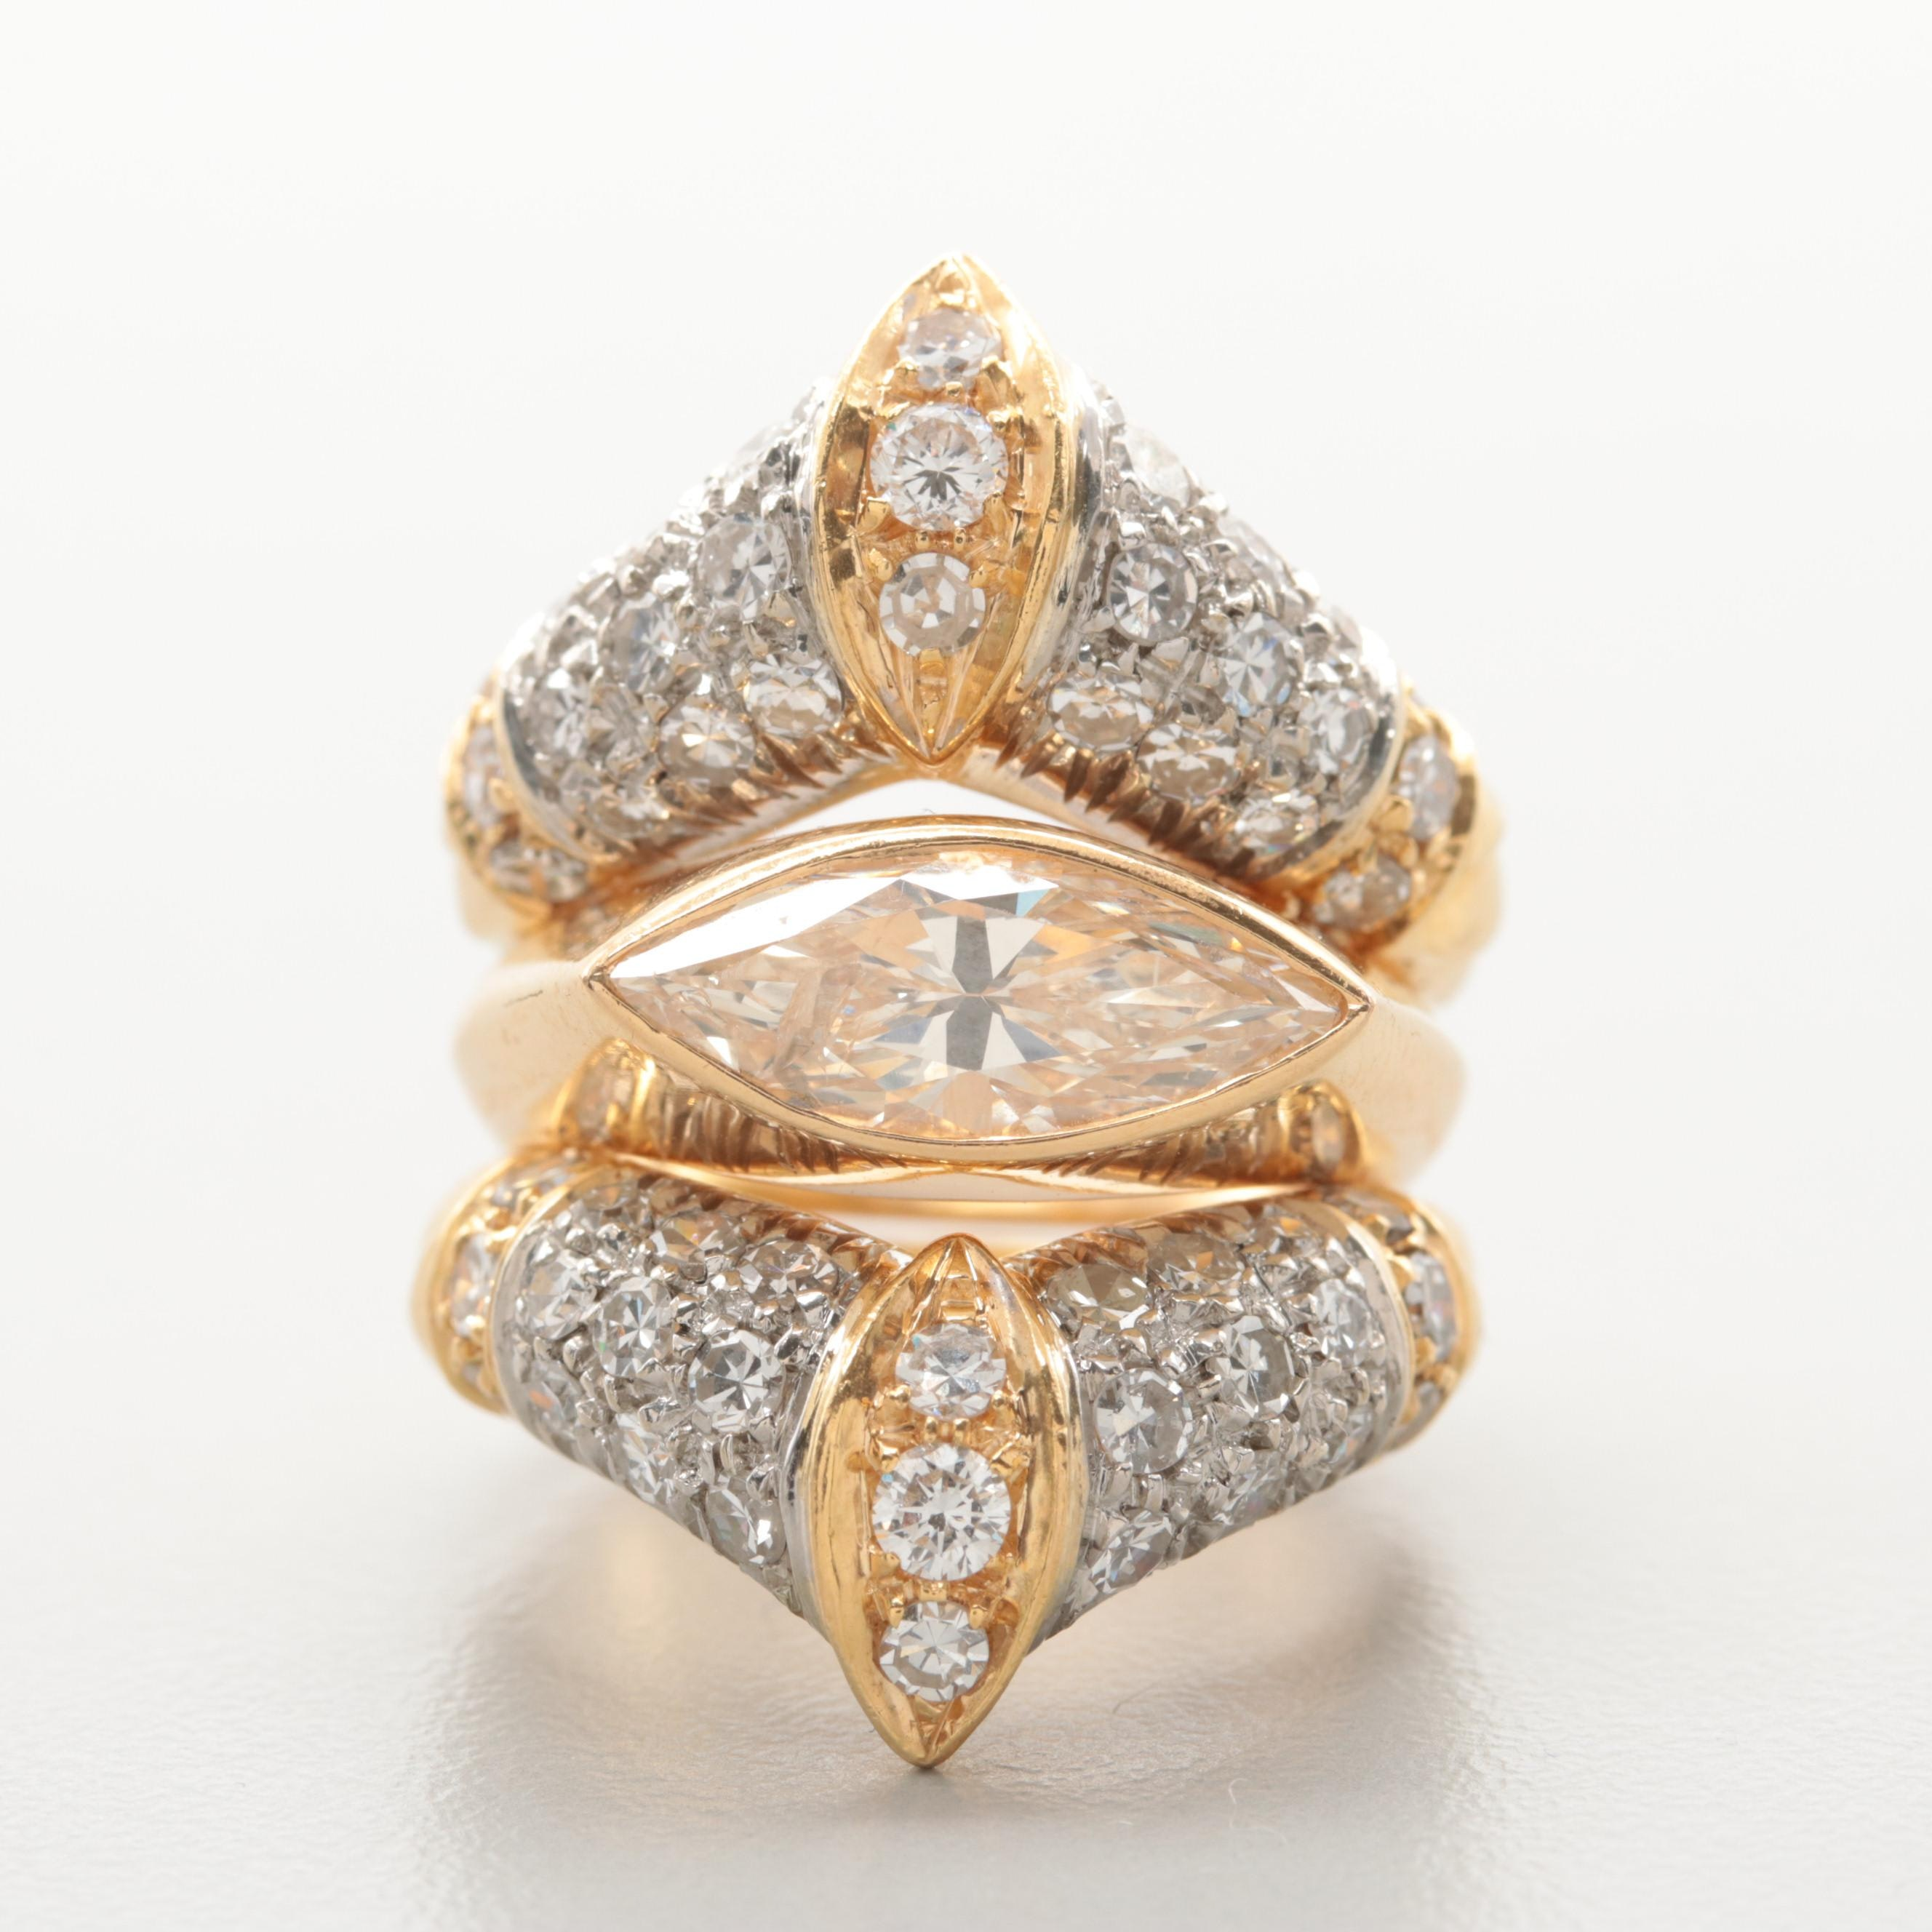 18K Yellow Gold 3.47 CTW Diamond Ring